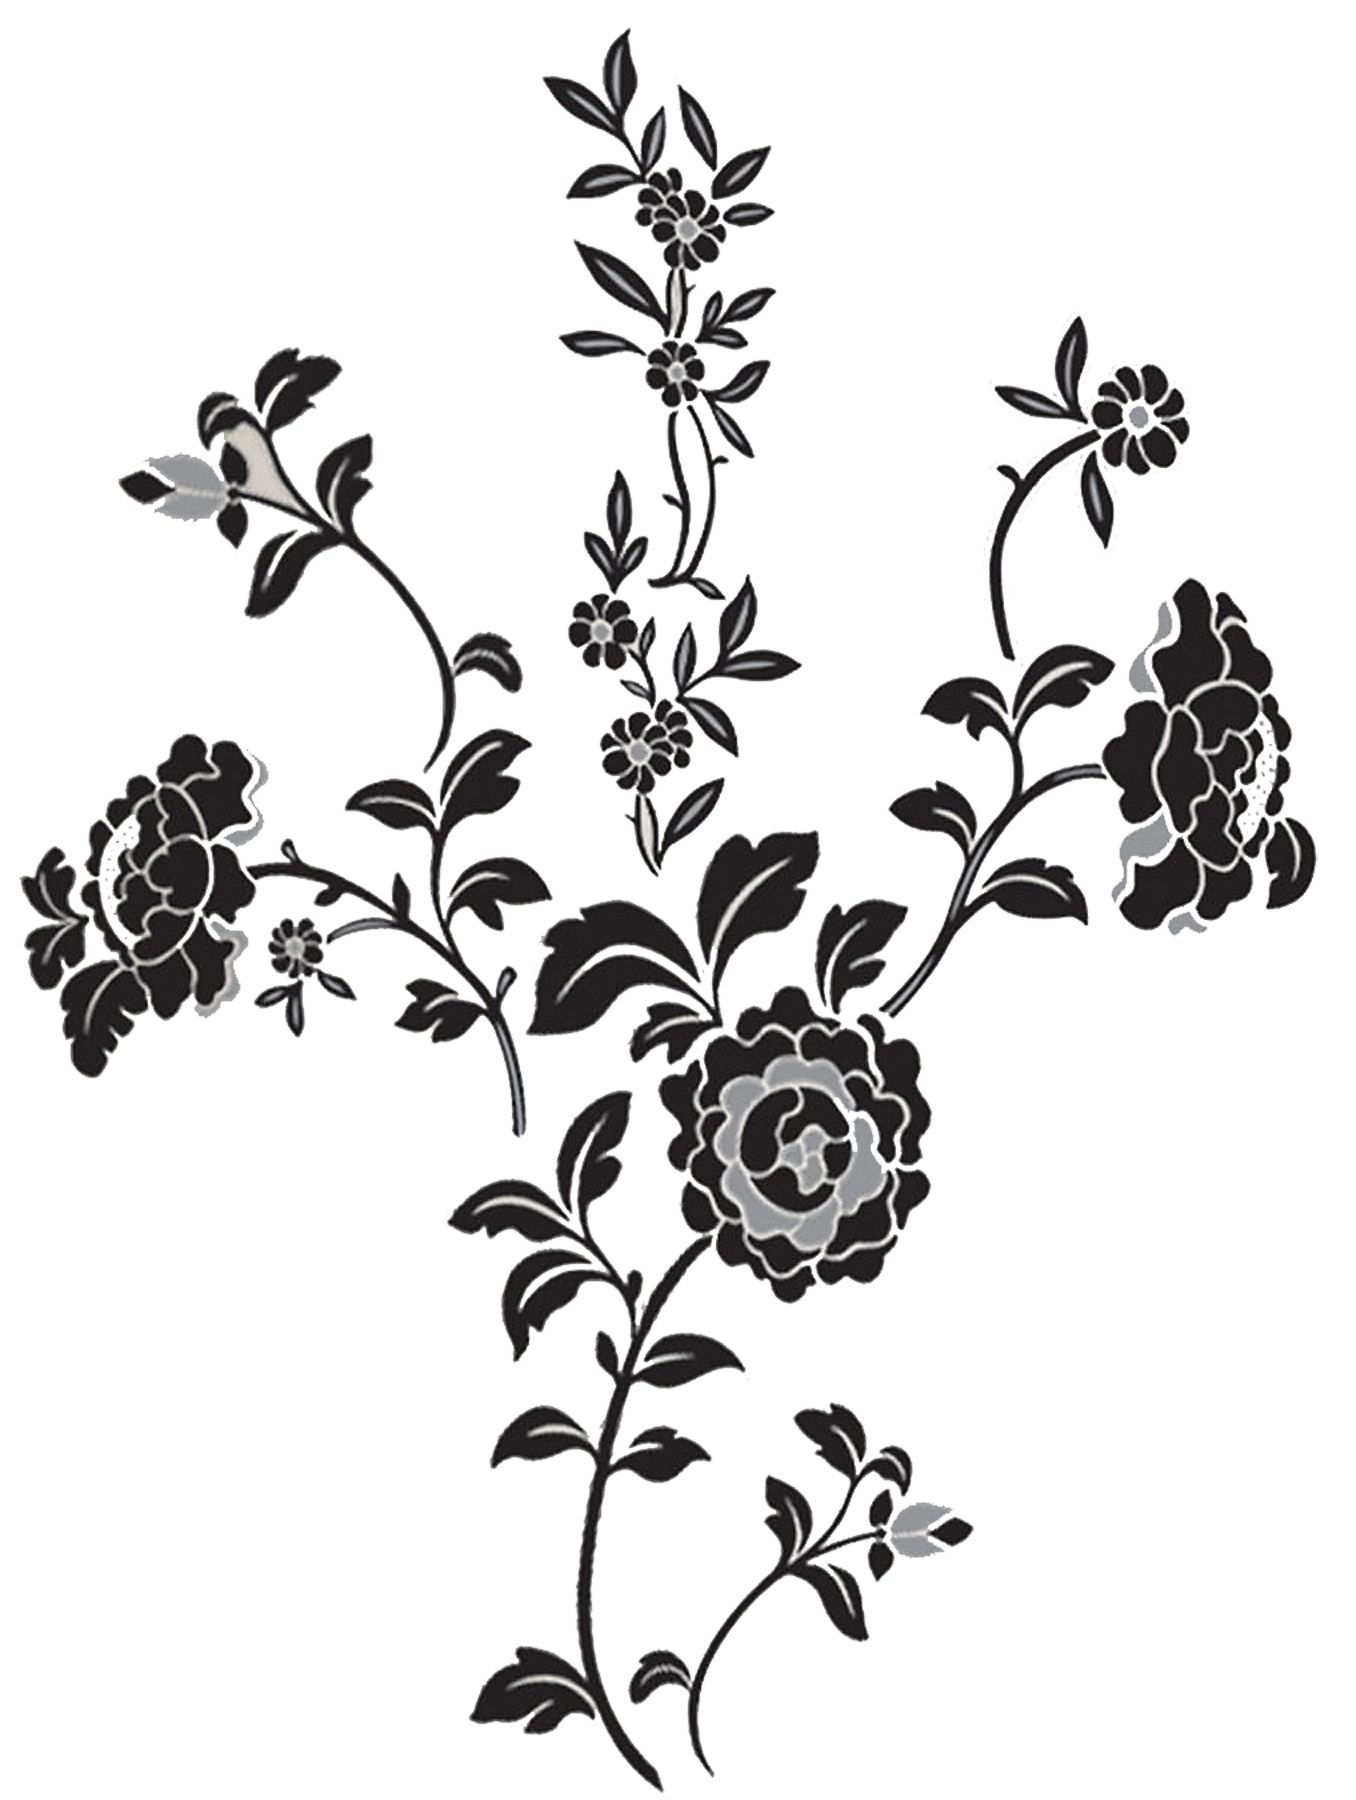 brocade black floral wall art sticker kit black and white flower scroll peel and stick giant wall